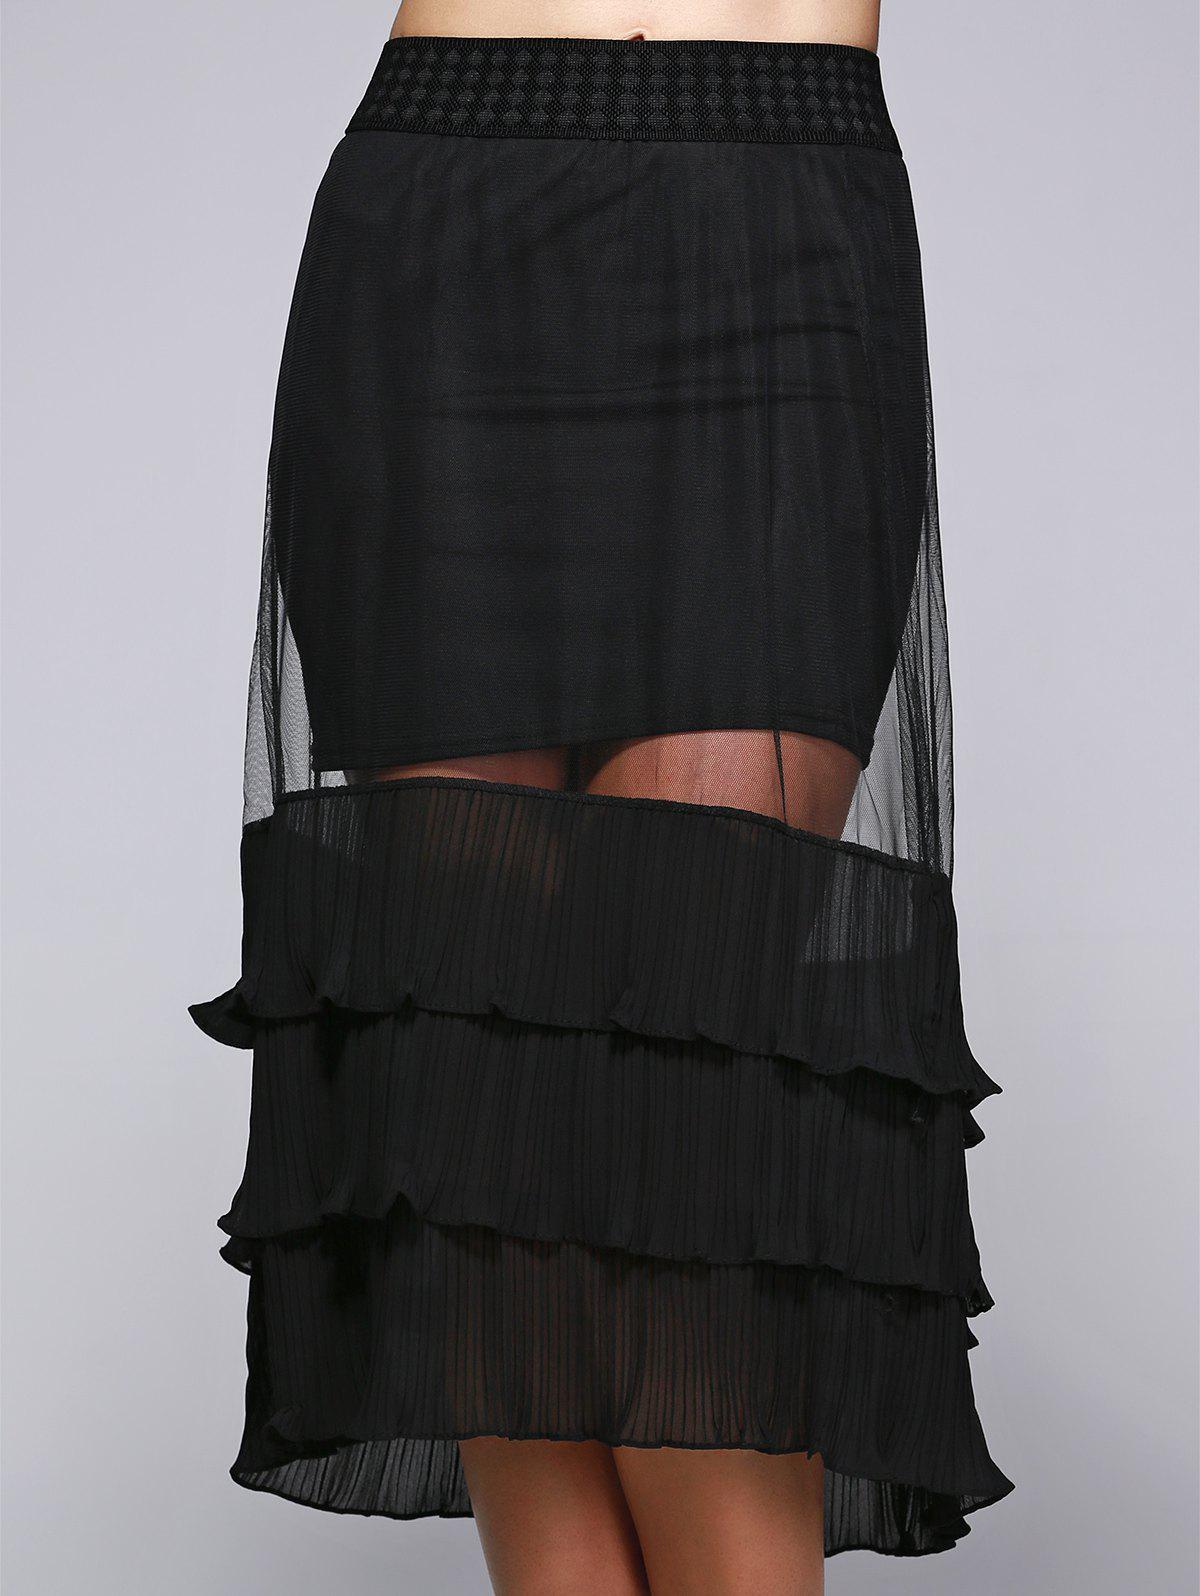 See-Through Convertible SkirtWomen<br><br><br>Size: ONE SIZE<br>Color: BLACK